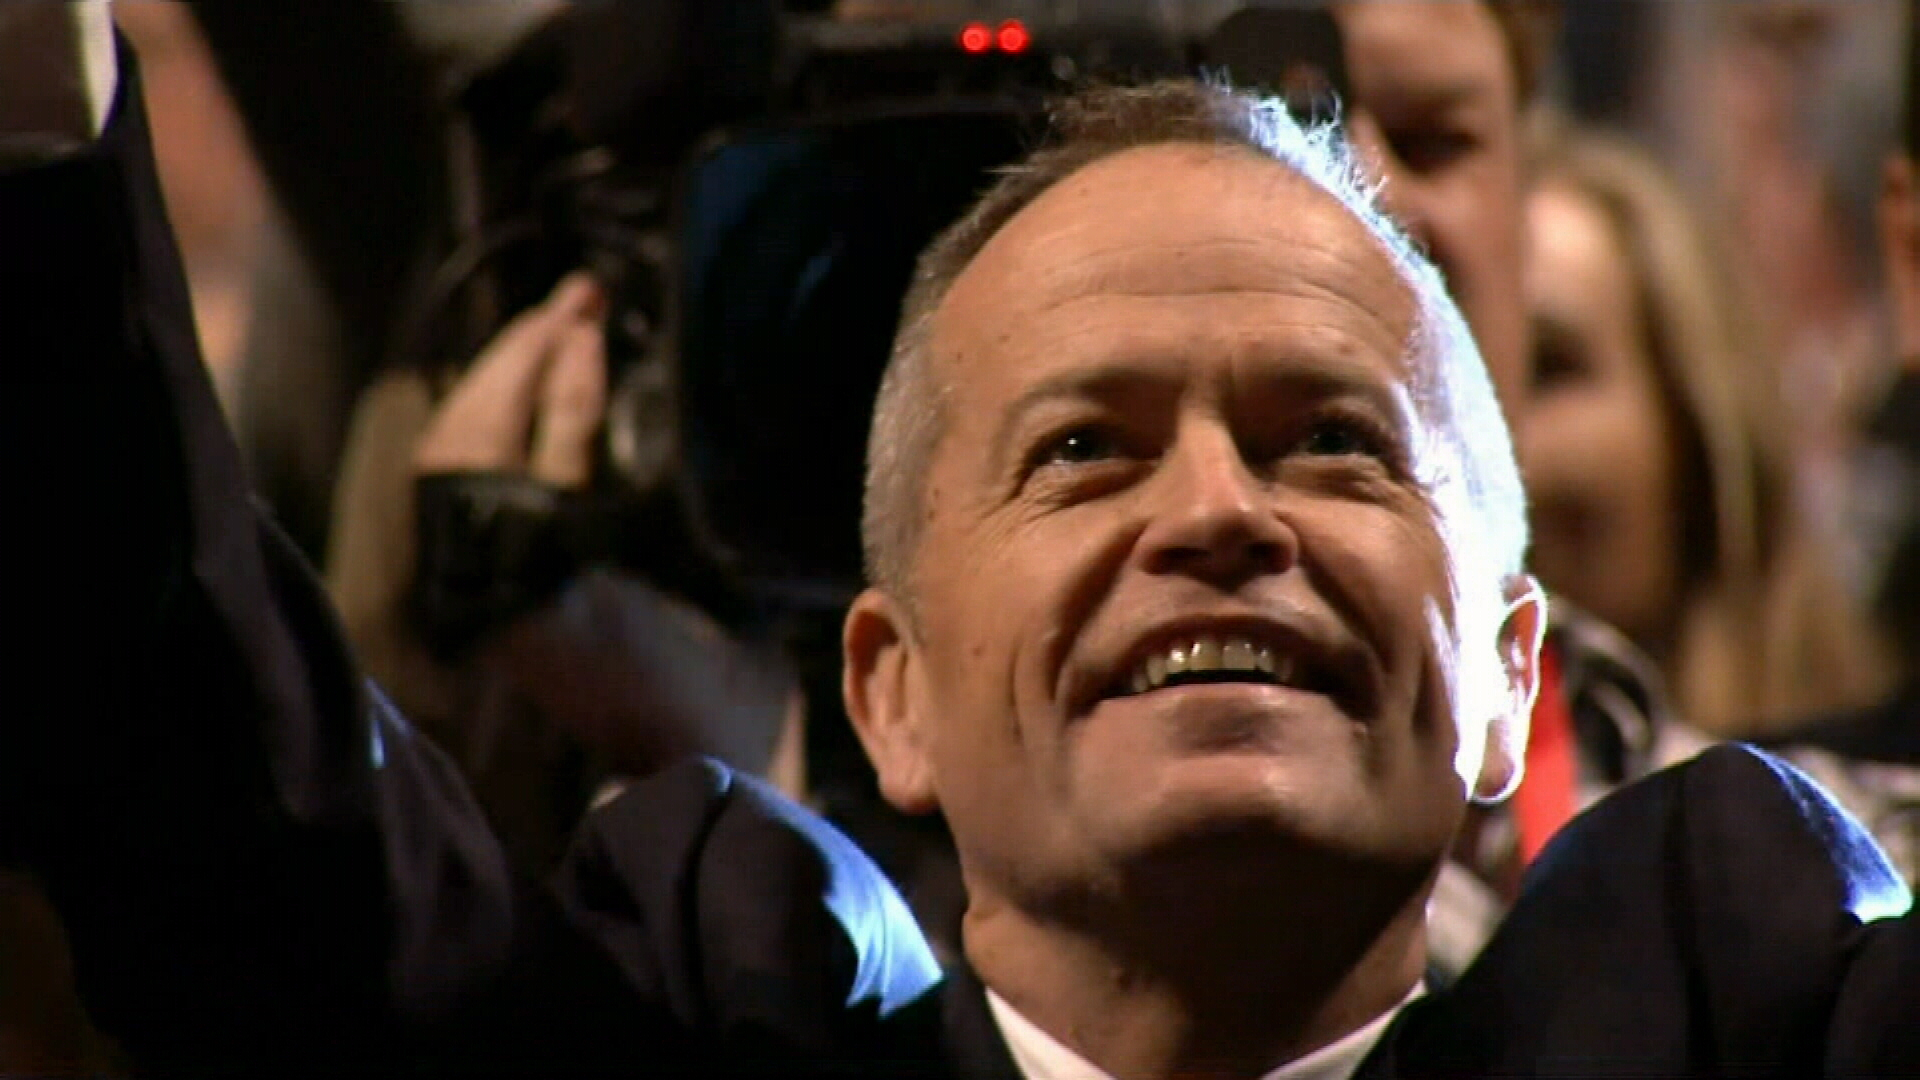 Shorten to unveil multi-billion dollar housing plan